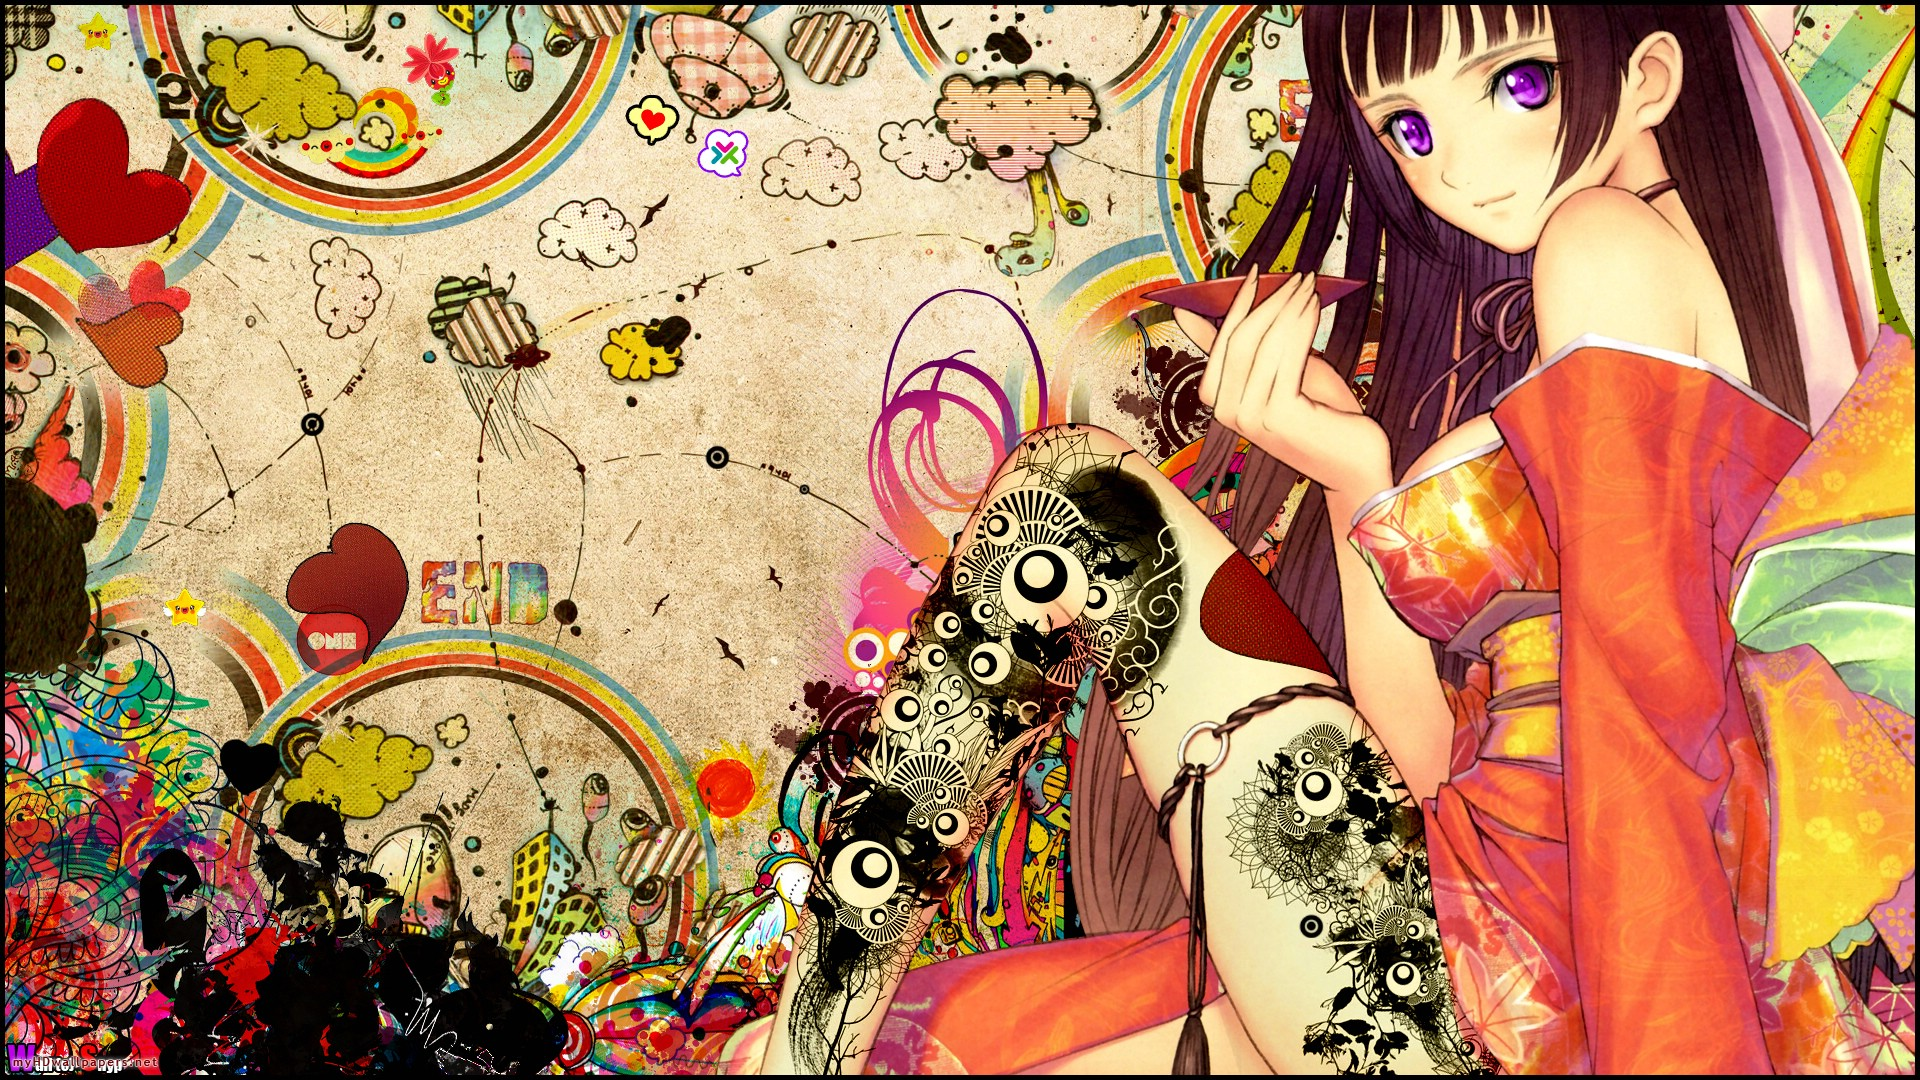 Anime art wallpaper wallpapersafari - Sketch anime wallpaper ...